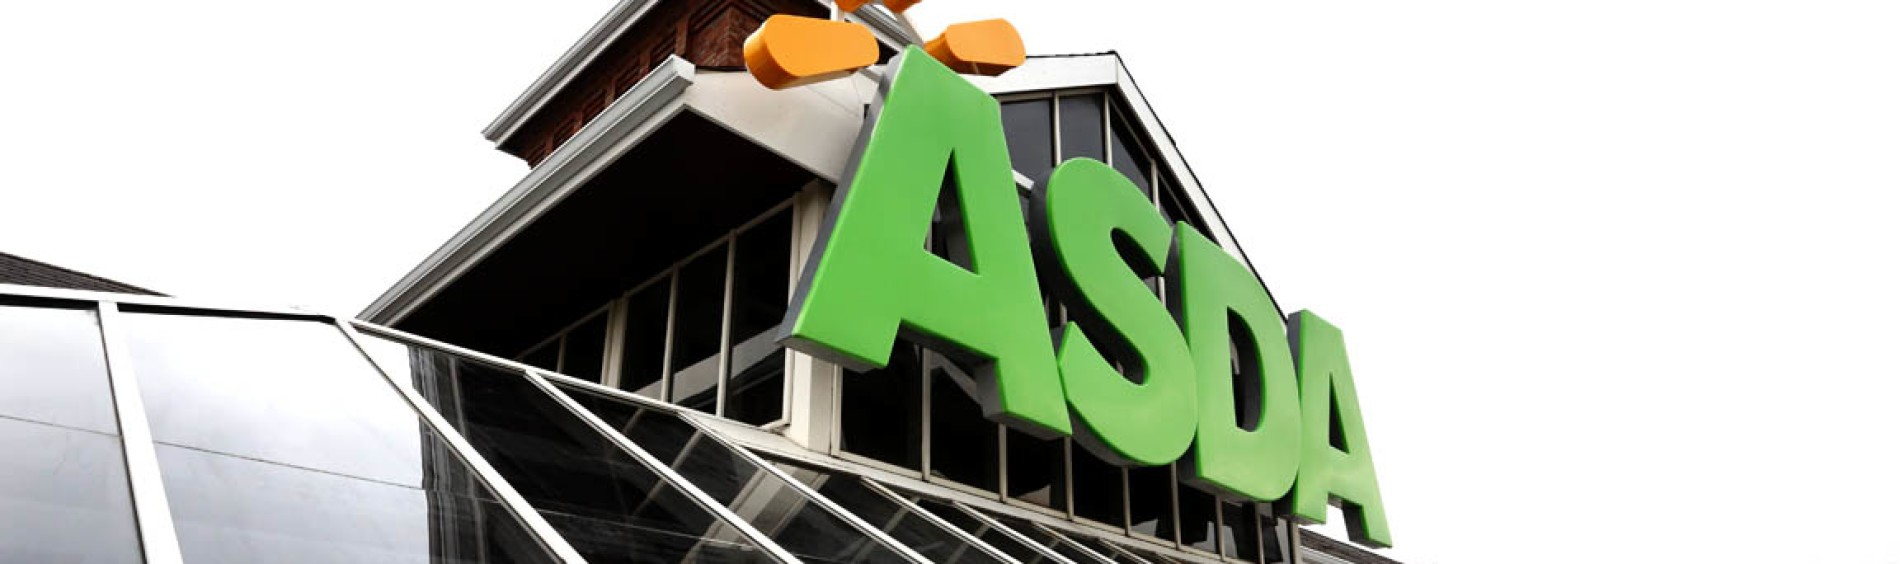 Store exterior with Asda logo on top of building